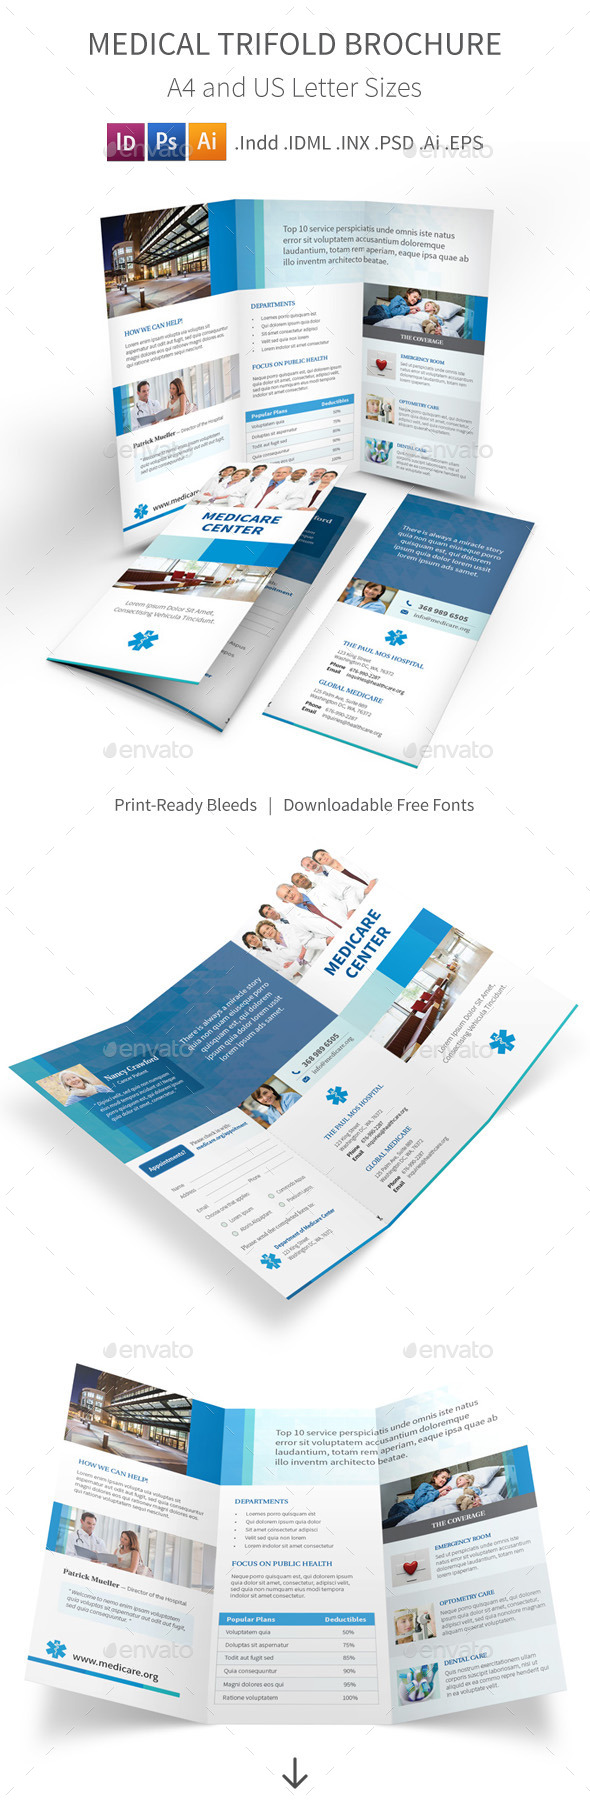 GraphicRiver Medical Trifold Brochure 9400813